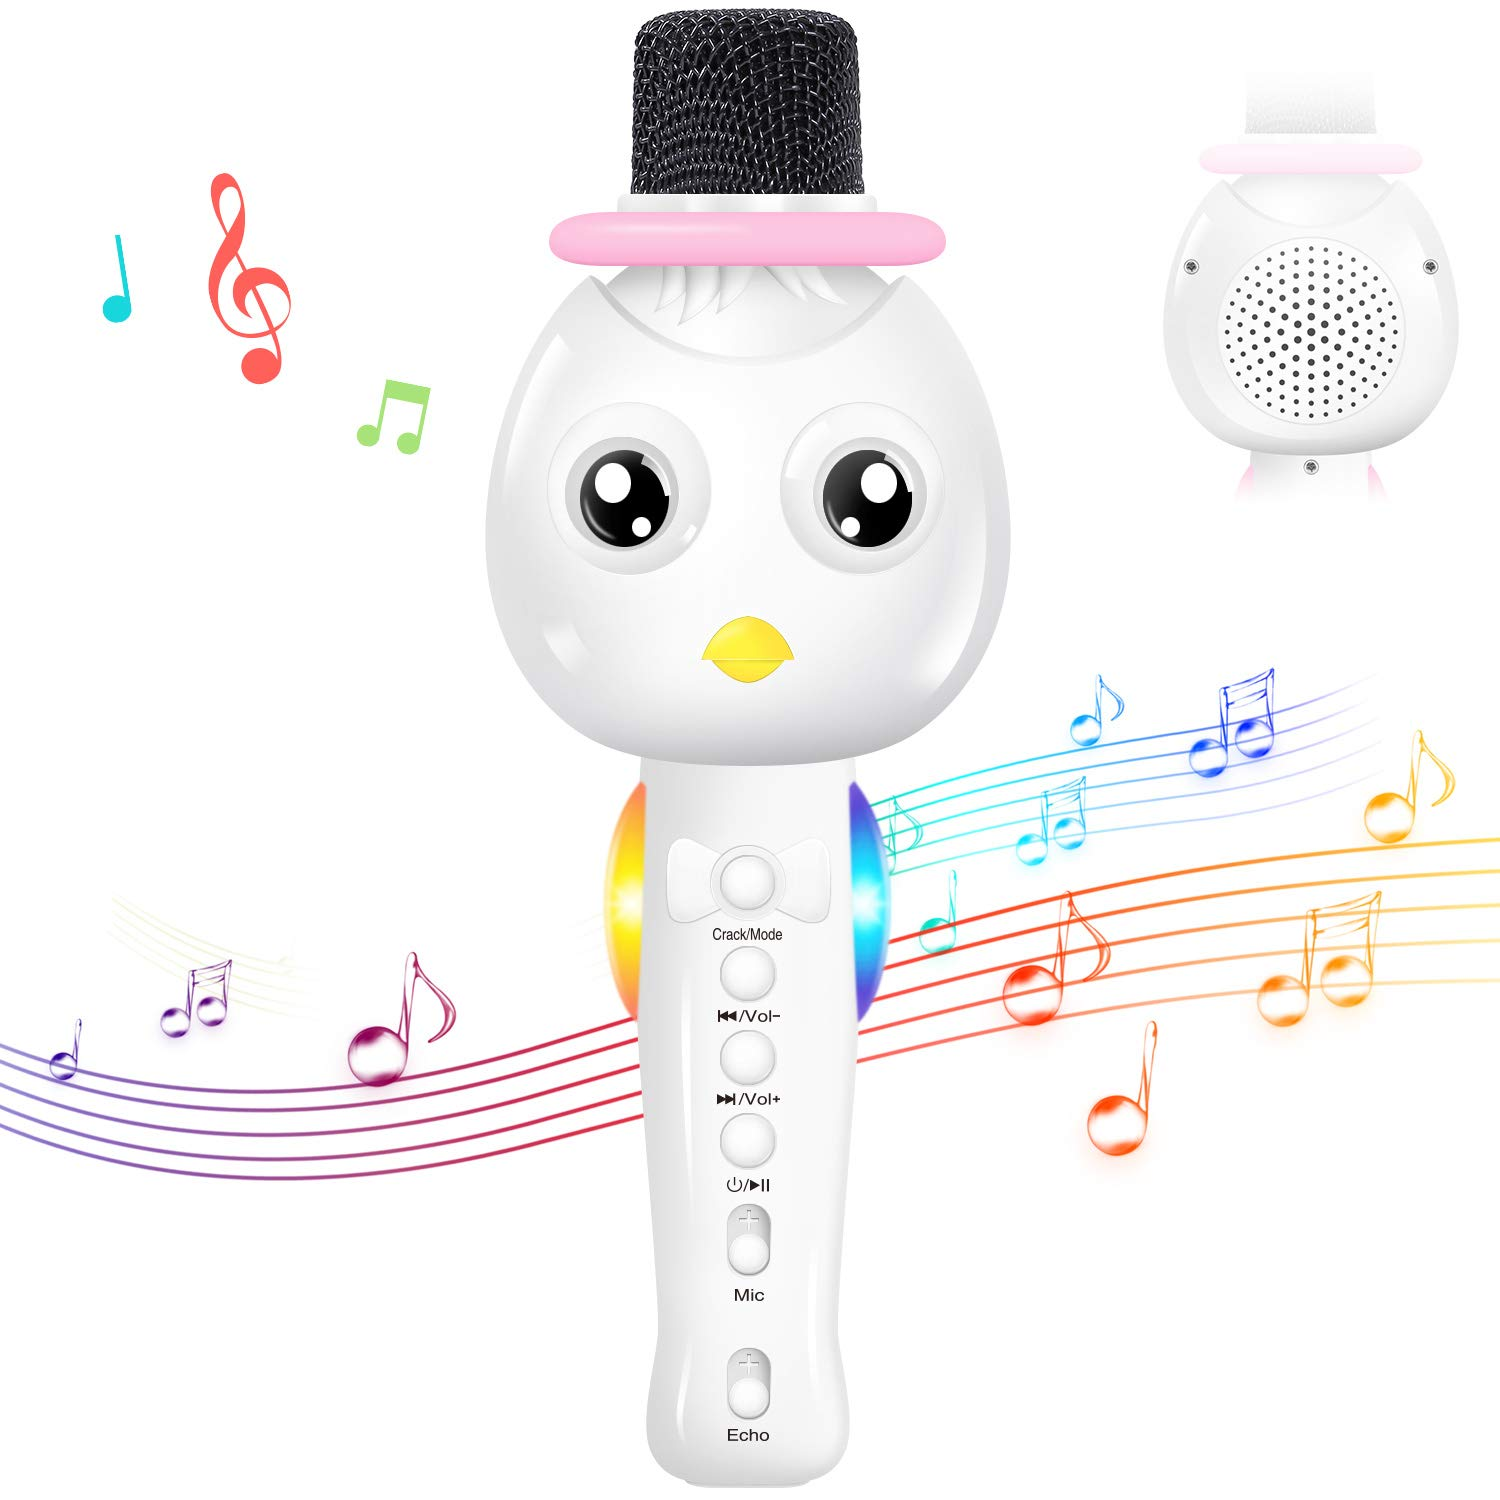 TONOR Kids Microphone, Wireless Portable Karaoke Bluetooth Mic for Kids with Speaker and Colorful Lights for Home Party KTV Birthday Gift Compatible with PC/iPad/iPhone/Android Smartphone